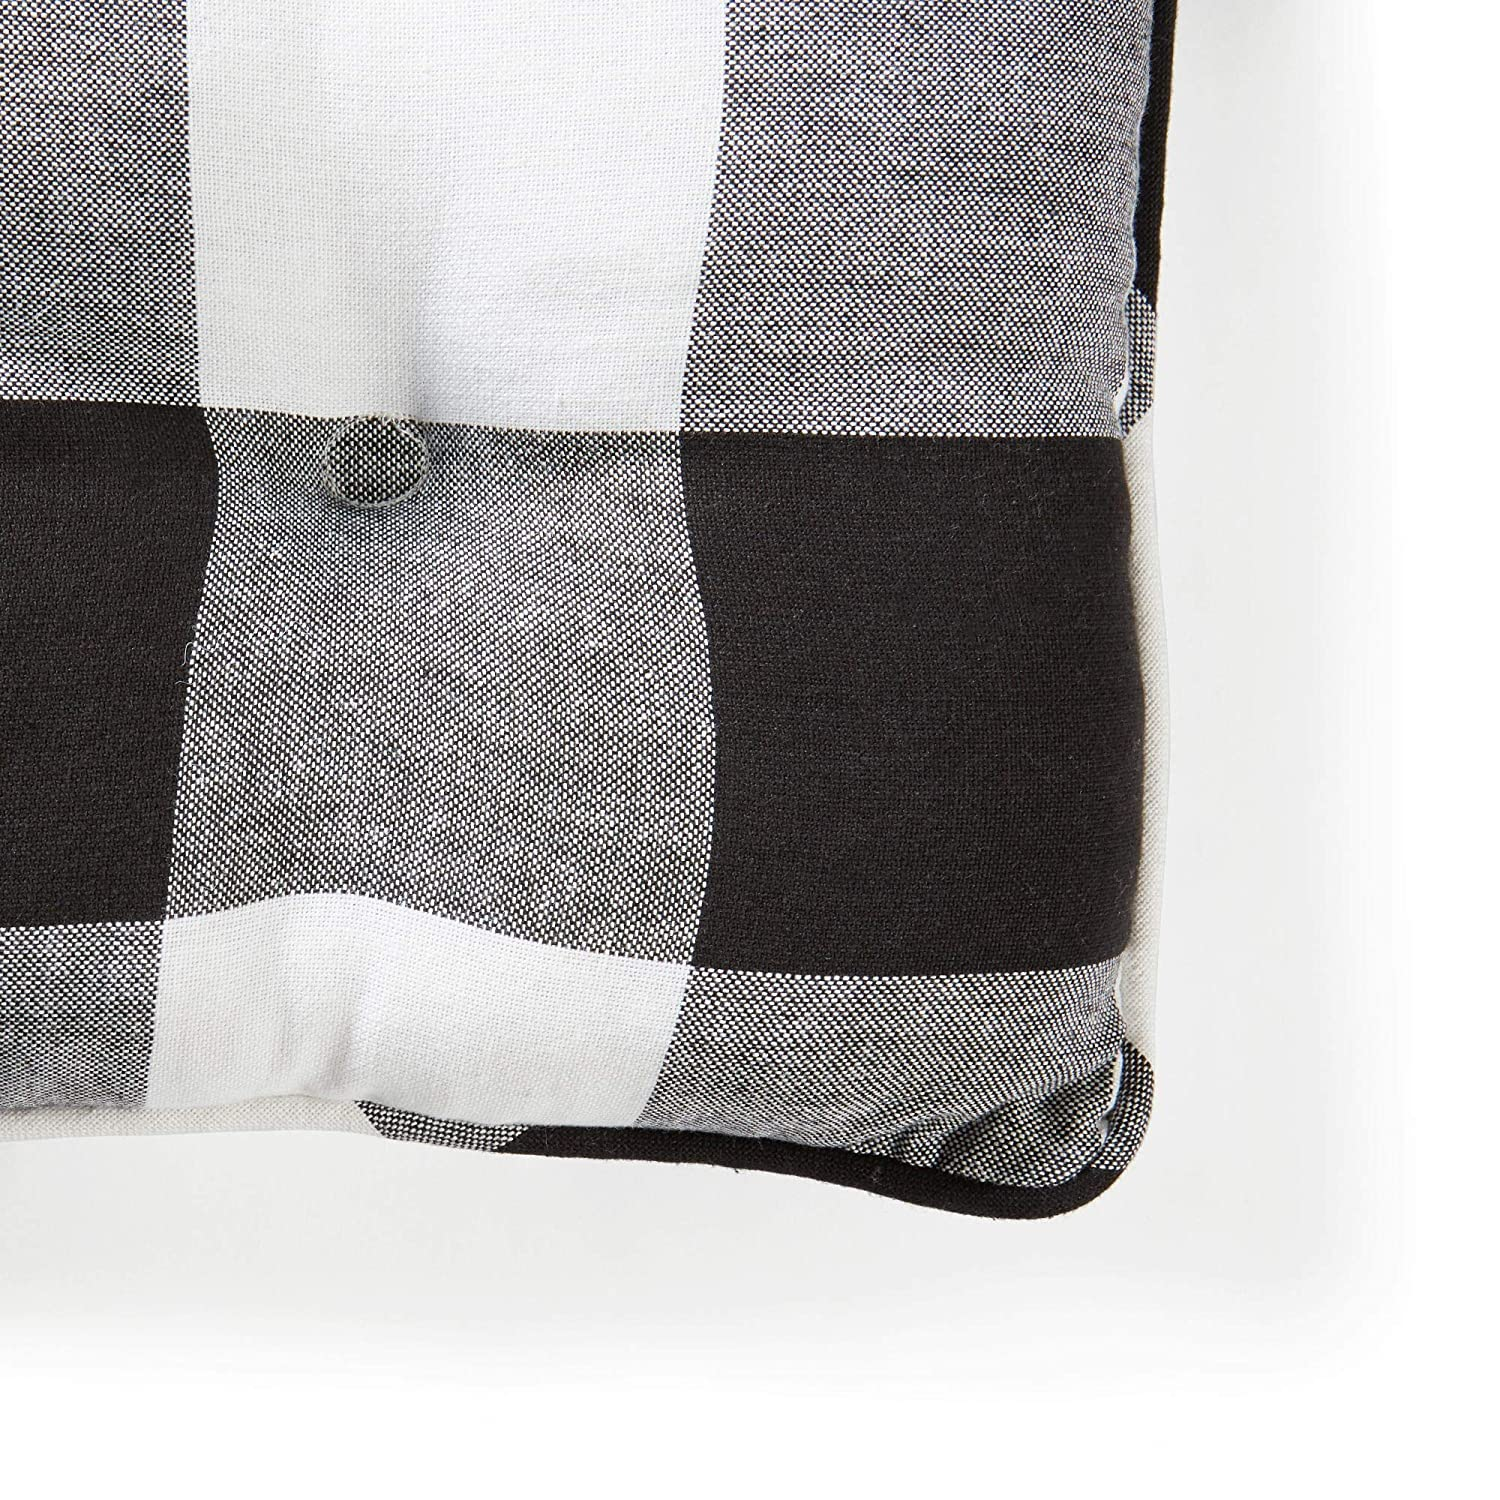 Home Collection Country Modern Farmhouse Black White Buffalo Plaid Check Set of 2 Dining Chair Cushions with Ties Chair Pads